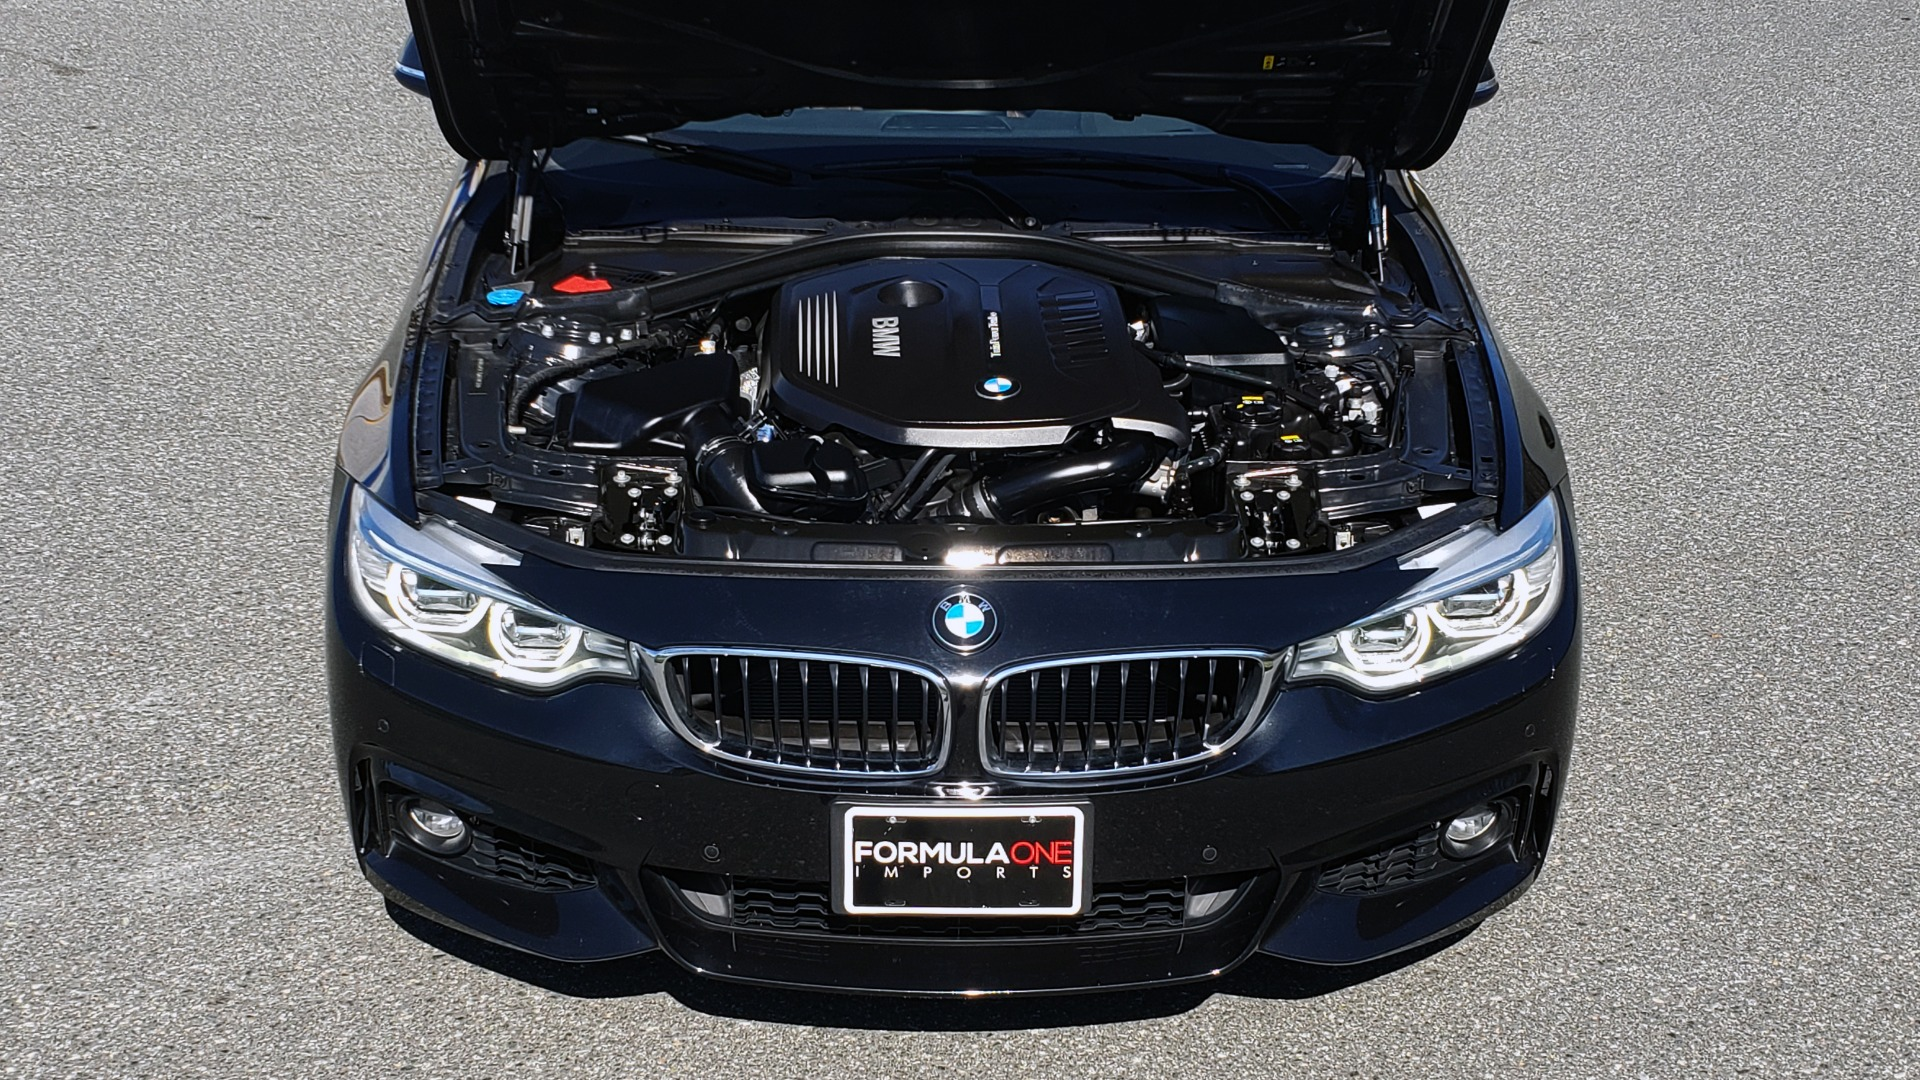 Used 2017 BMW 4 SERIES 440i XDRIVE M-SPORT / TECH / CLD WTHR / DRVR ASST PLUS / LIGHTING for sale Sold at Formula Imports in Charlotte NC 28227 13